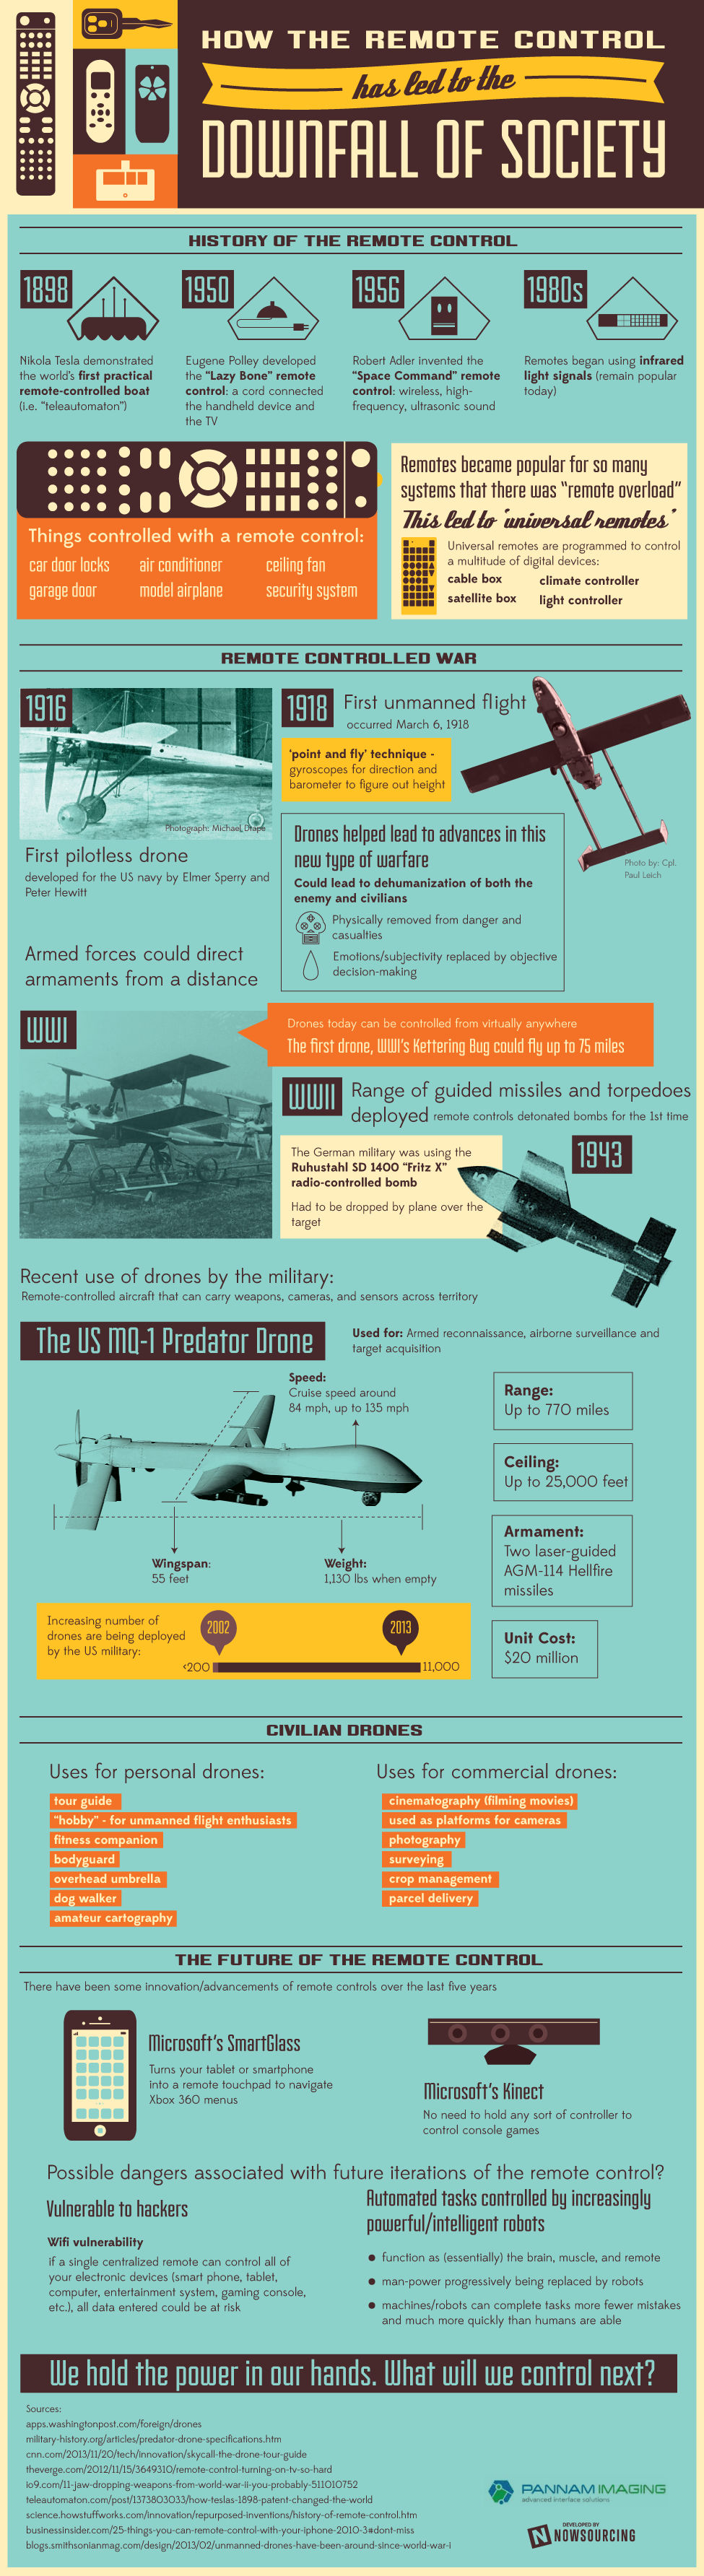 Remote Control Infographic